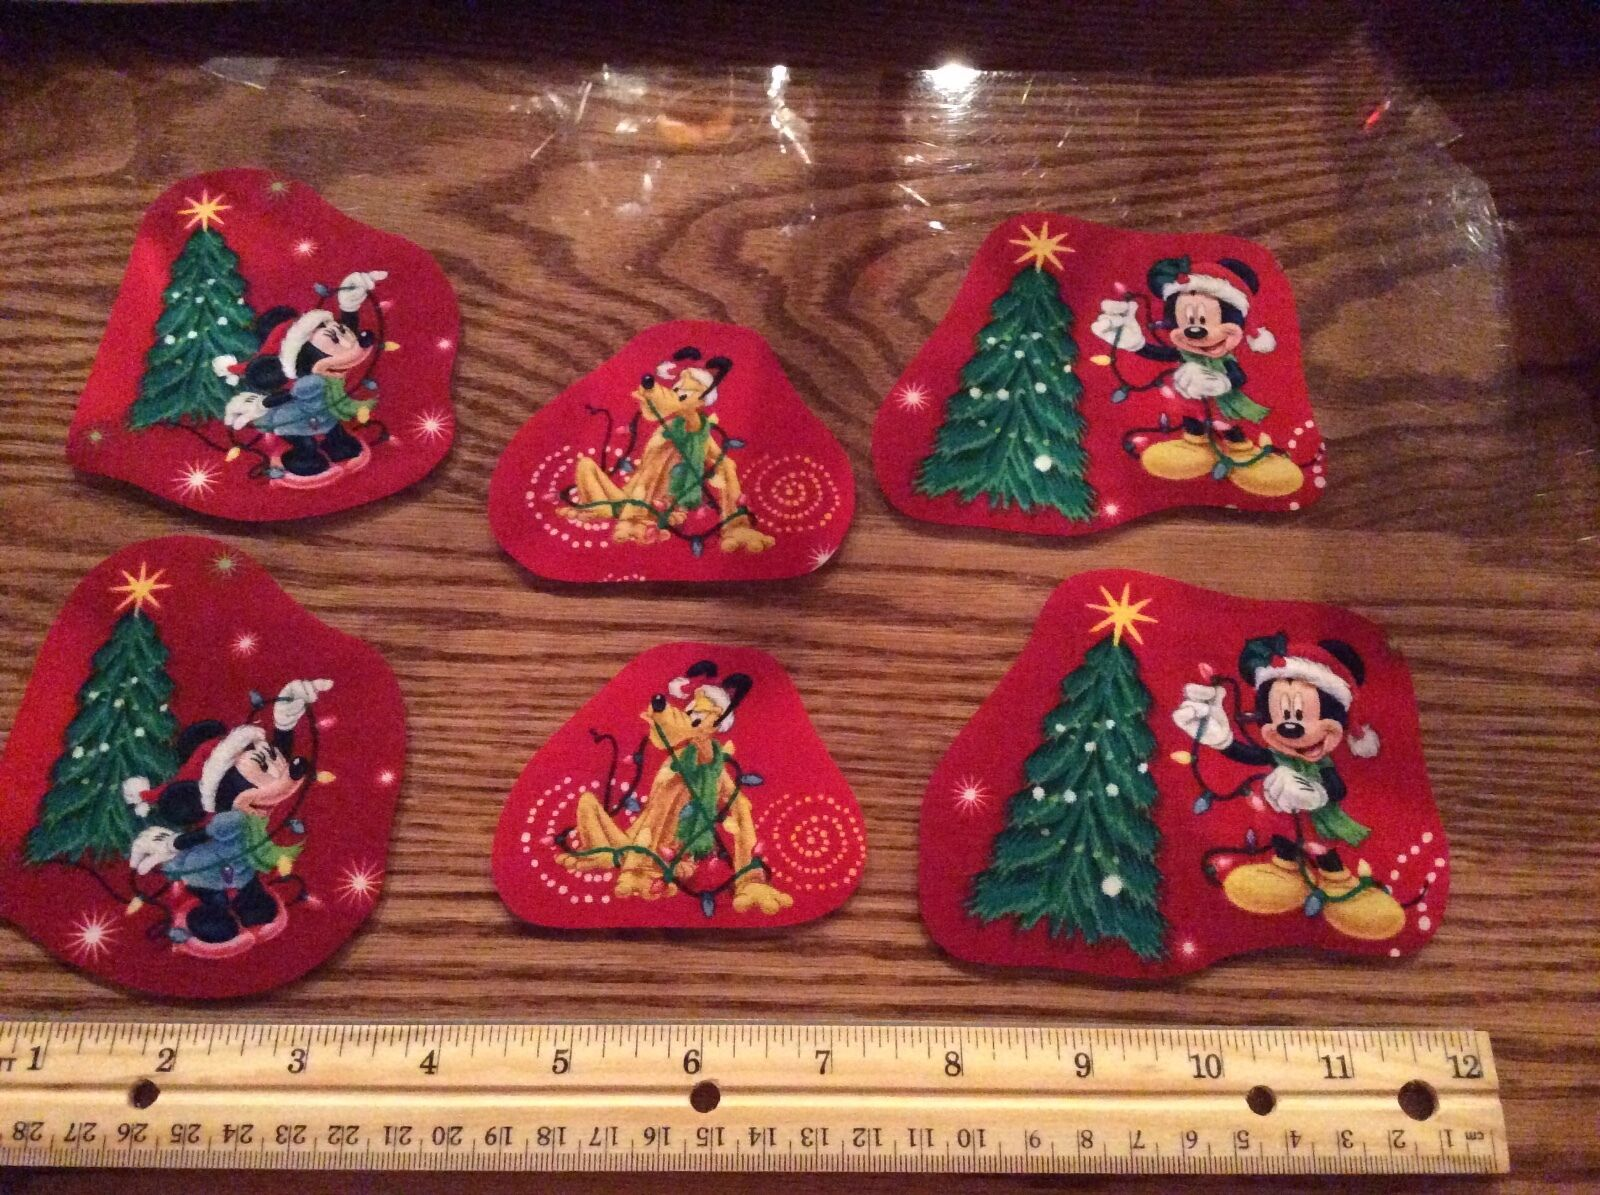 1 of 3 see more - Disney Christmas Fabric